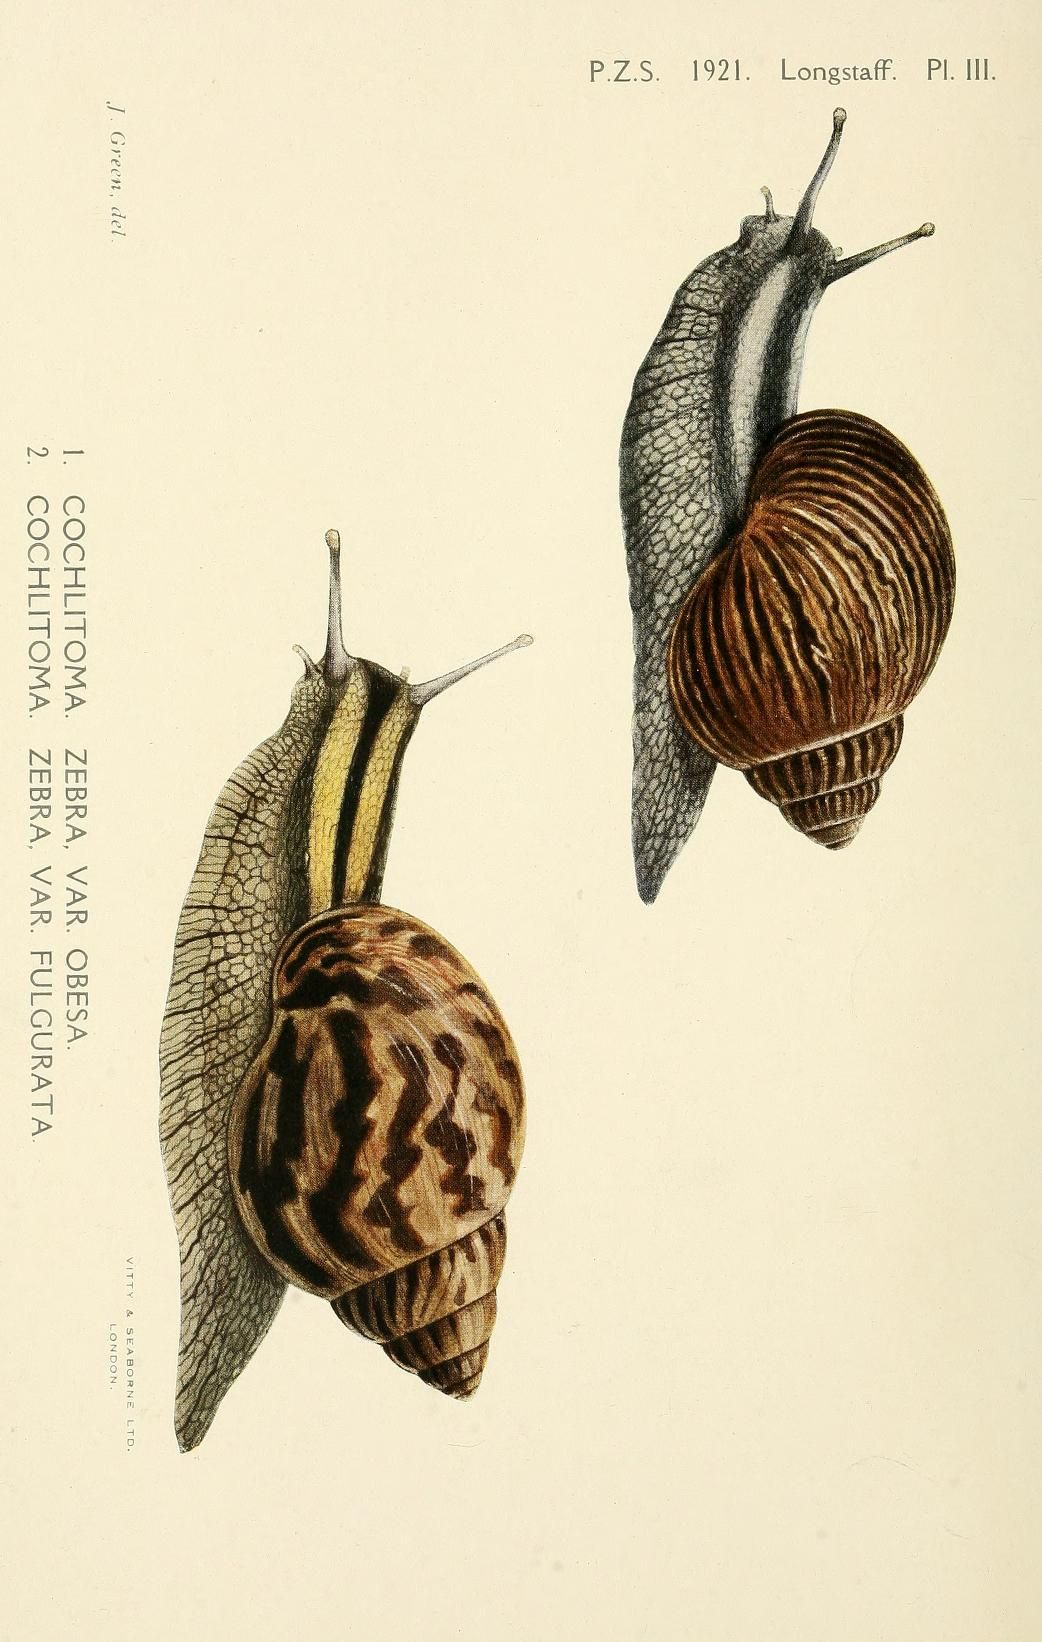 1921, pp. 1-446 - Proceedings of the Zoological Society of London. - Biodiversity Heritage Library